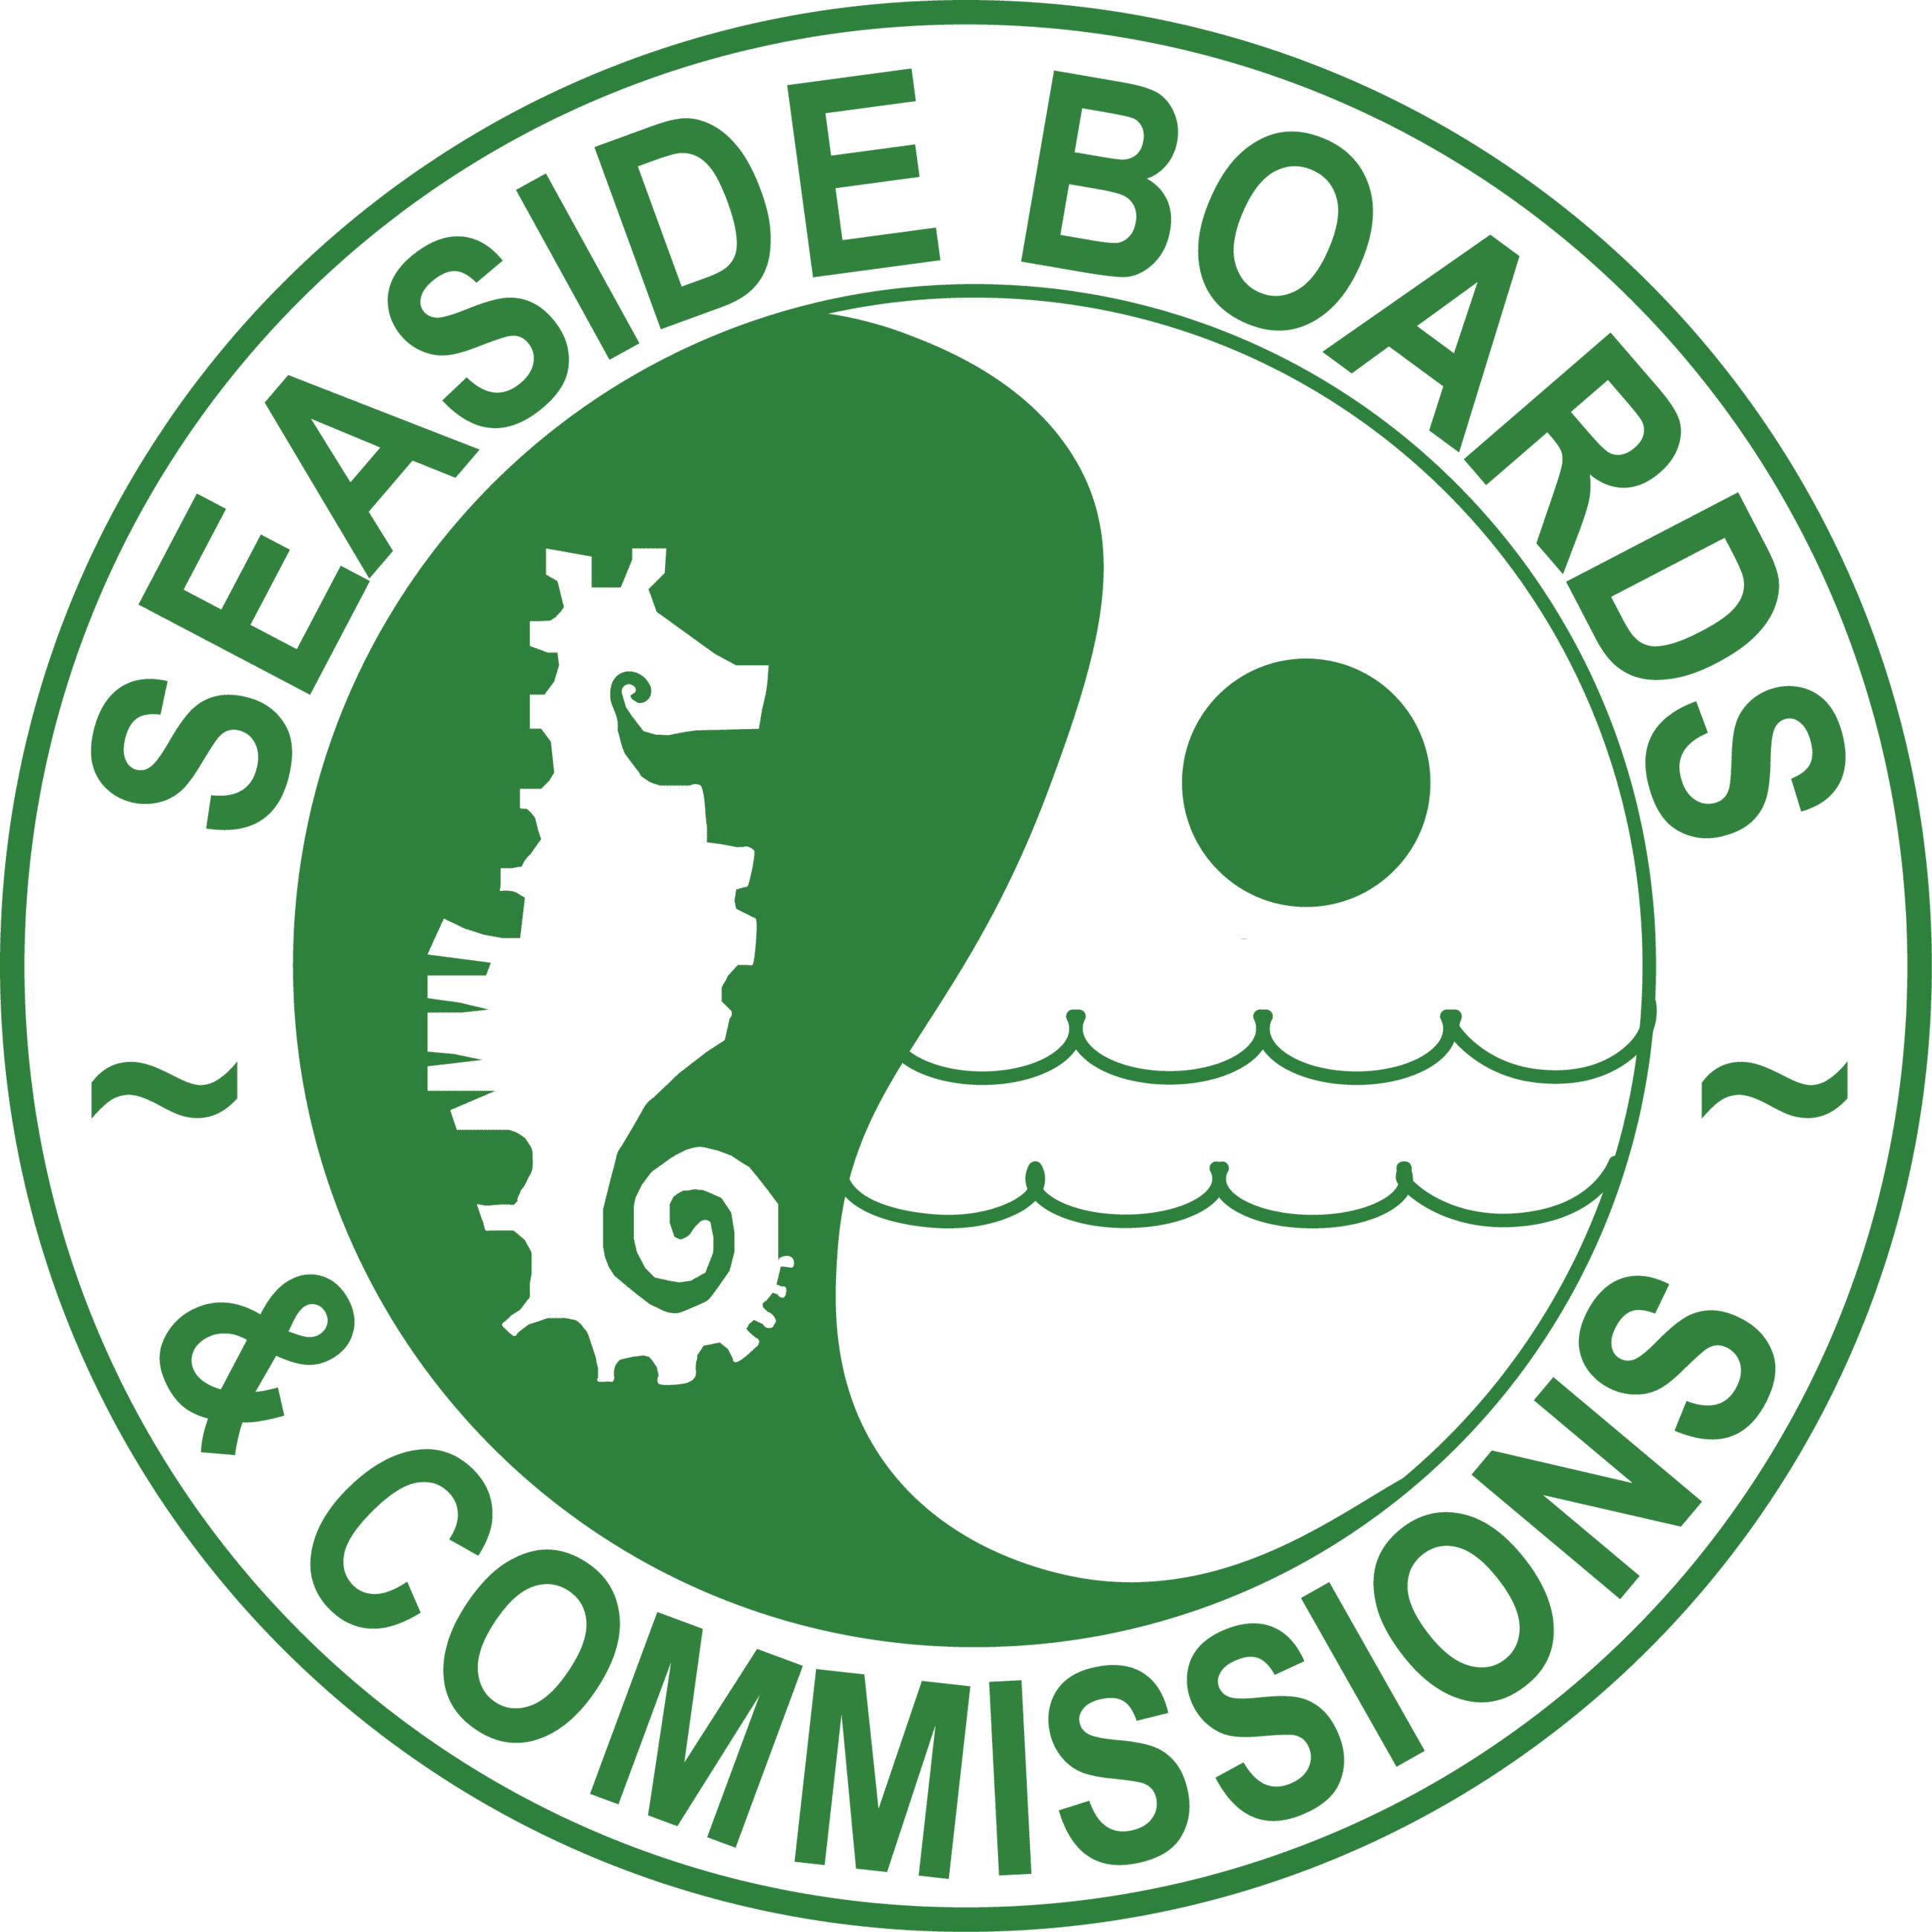 Green Boards and Commissions Logo